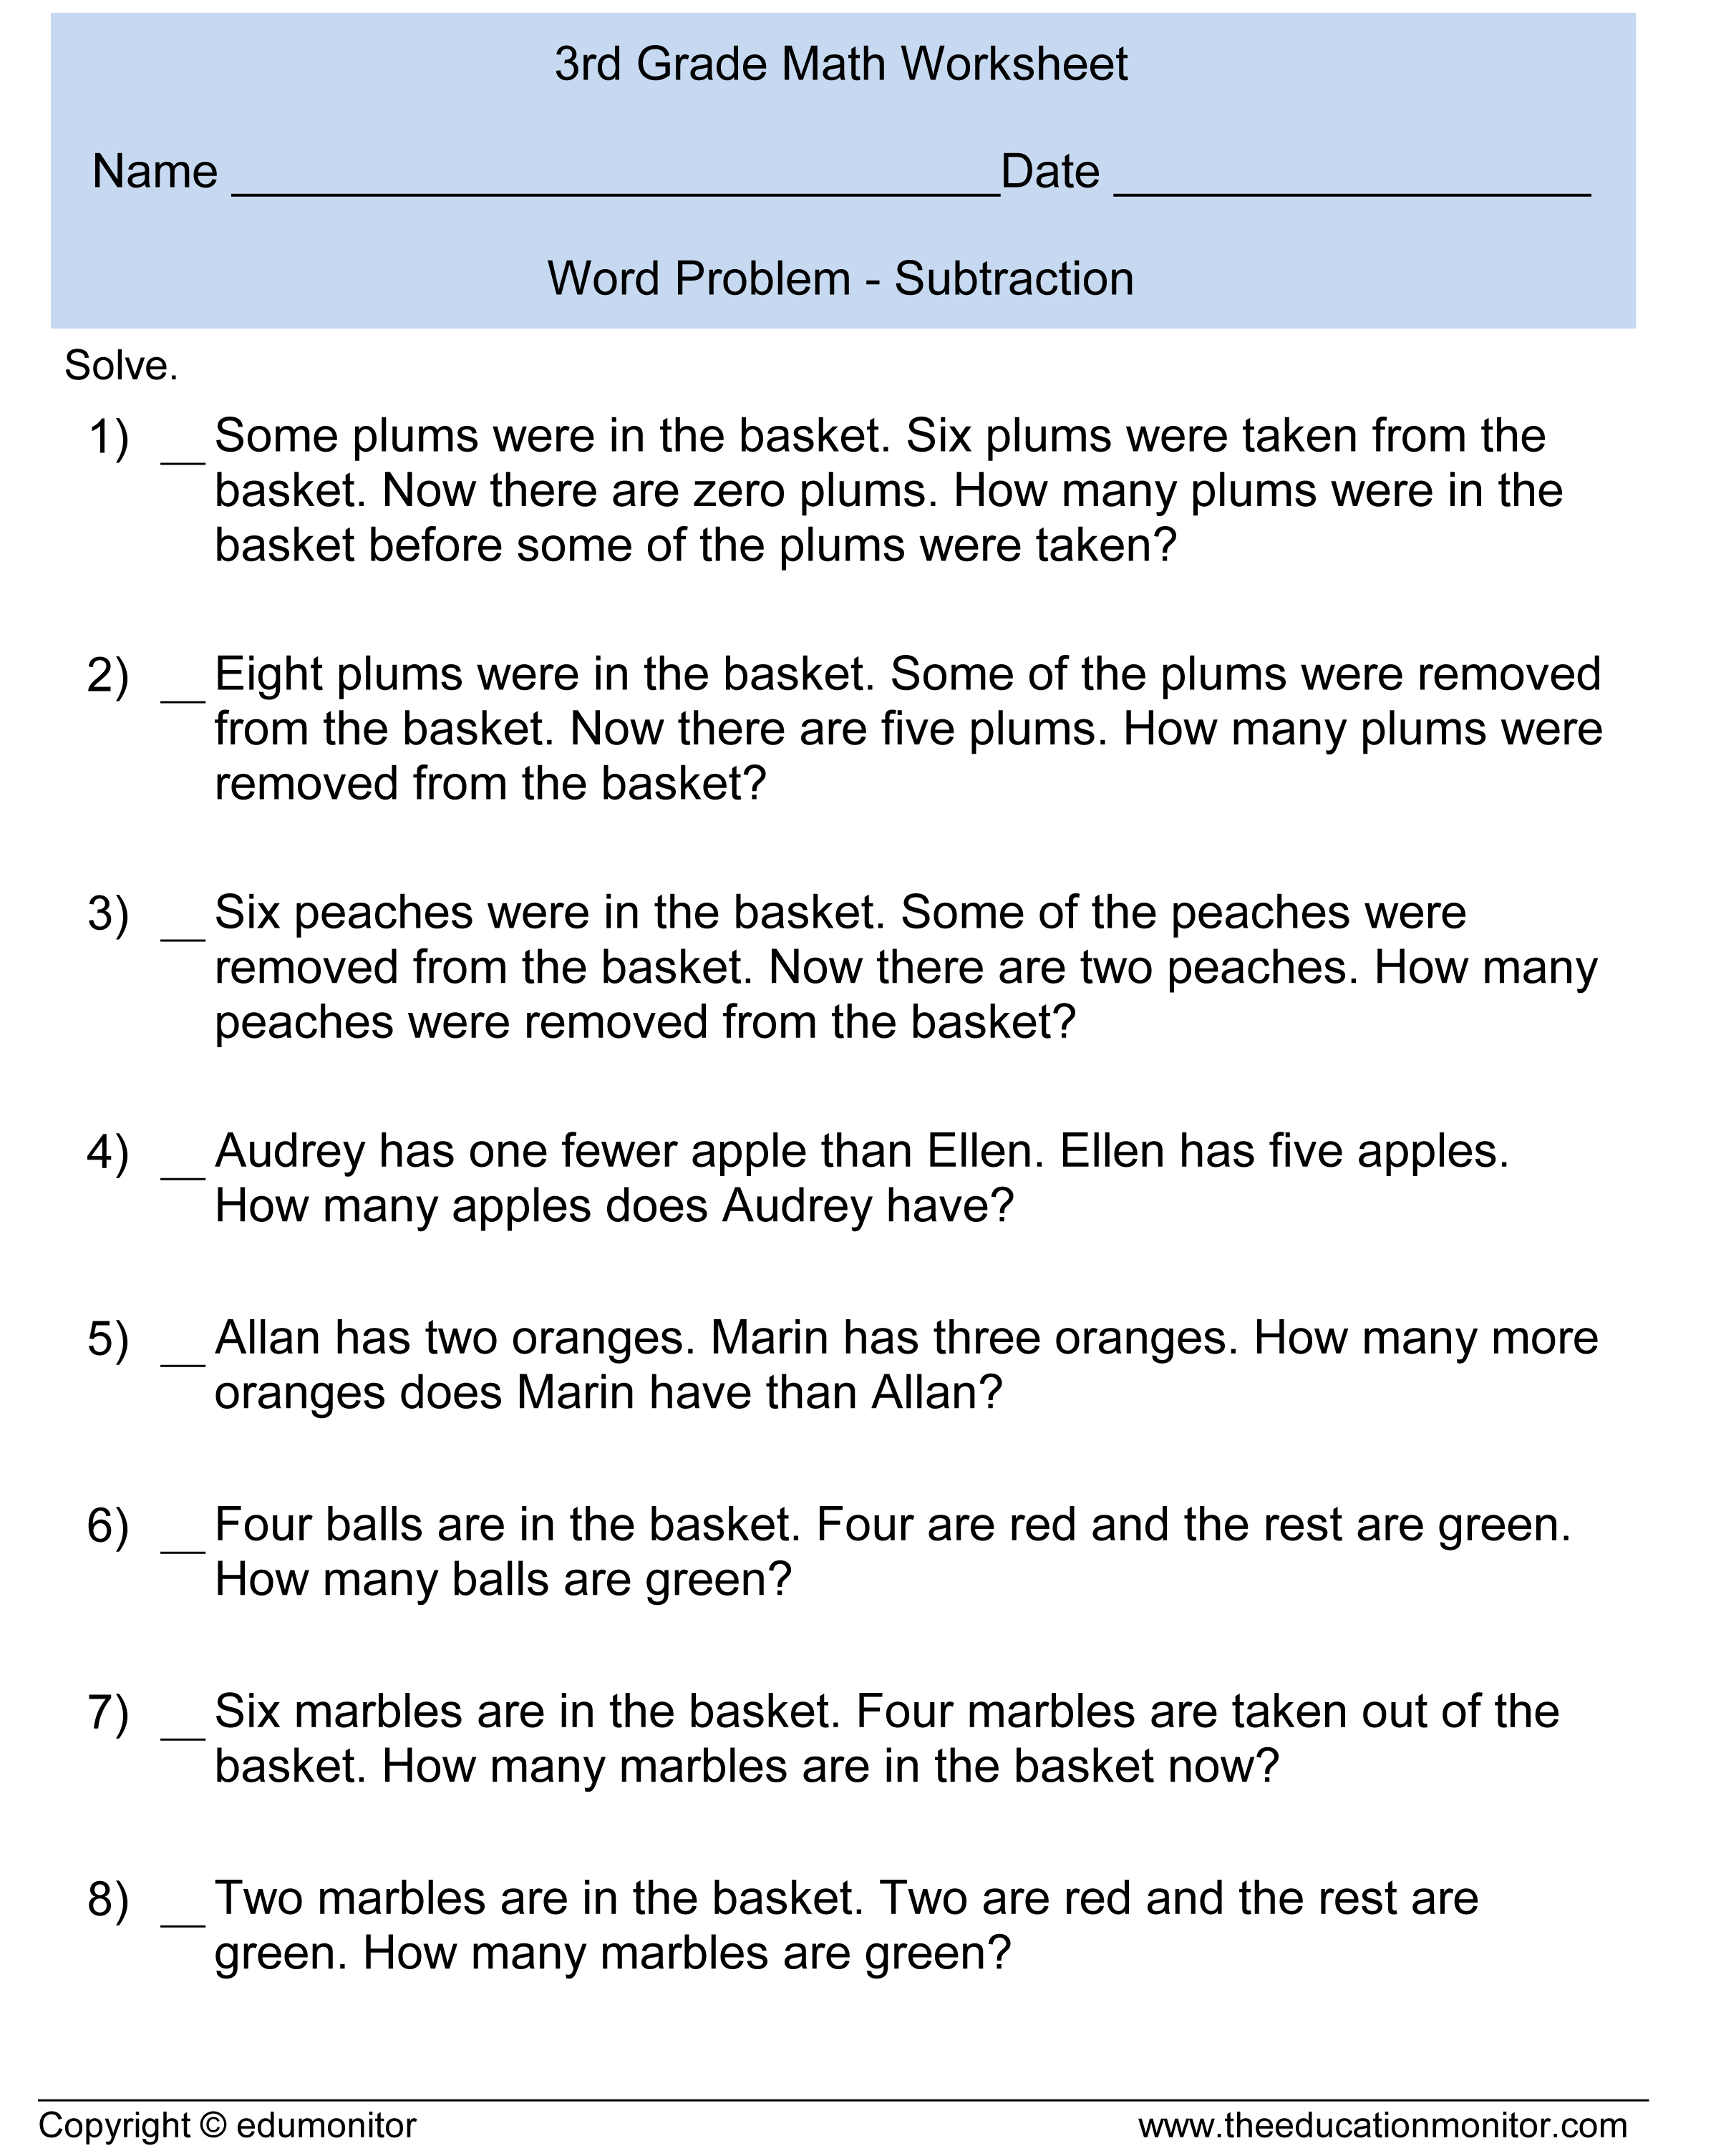 Addition word problem worksheets 2nd grade 8673299 - aks-flight.info